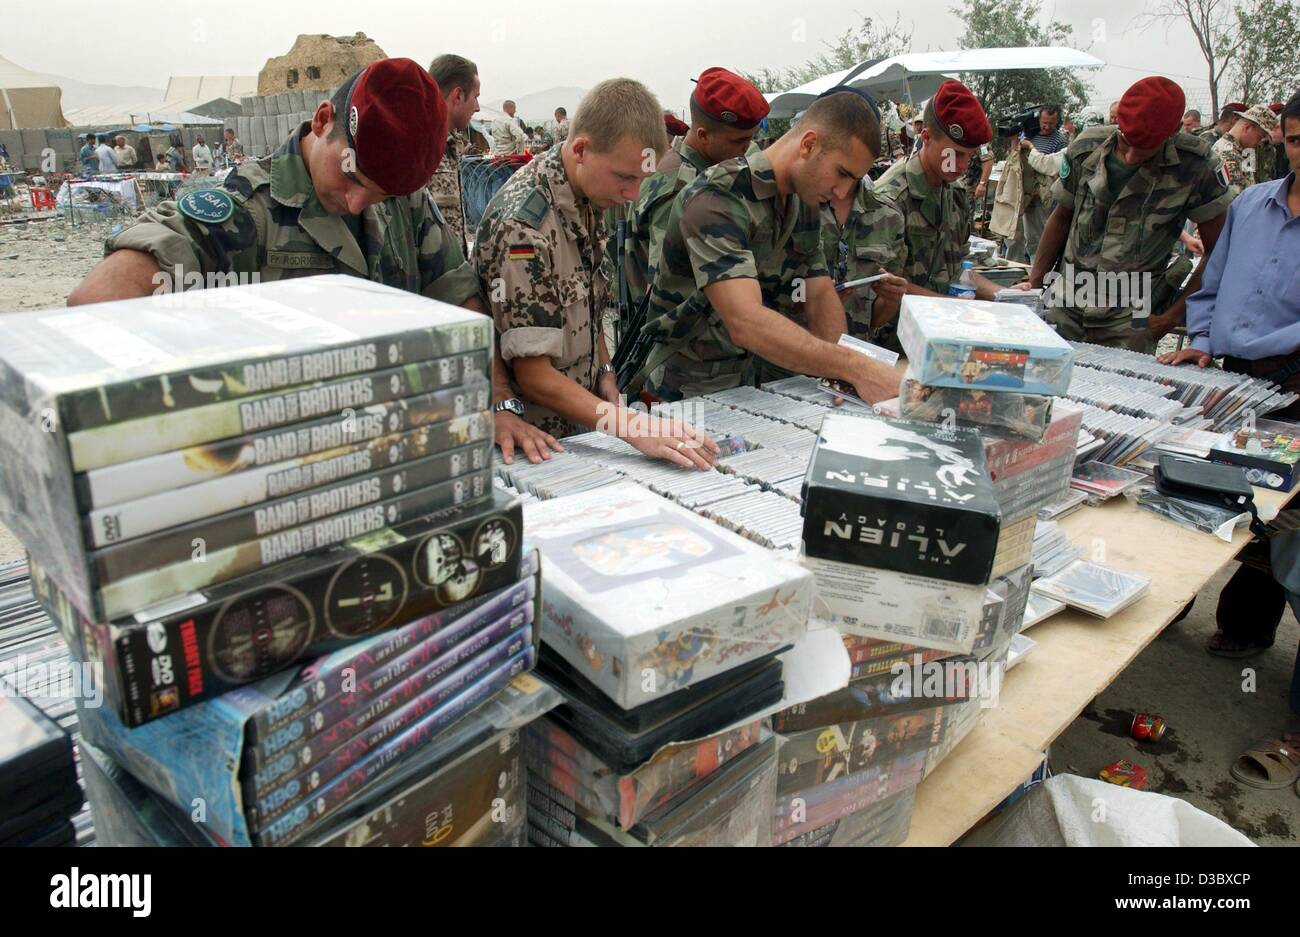 (dpa) - German soldiers look, in their spare time, through stacks of dvds, cds and other merchandise at the stands - Stock Image